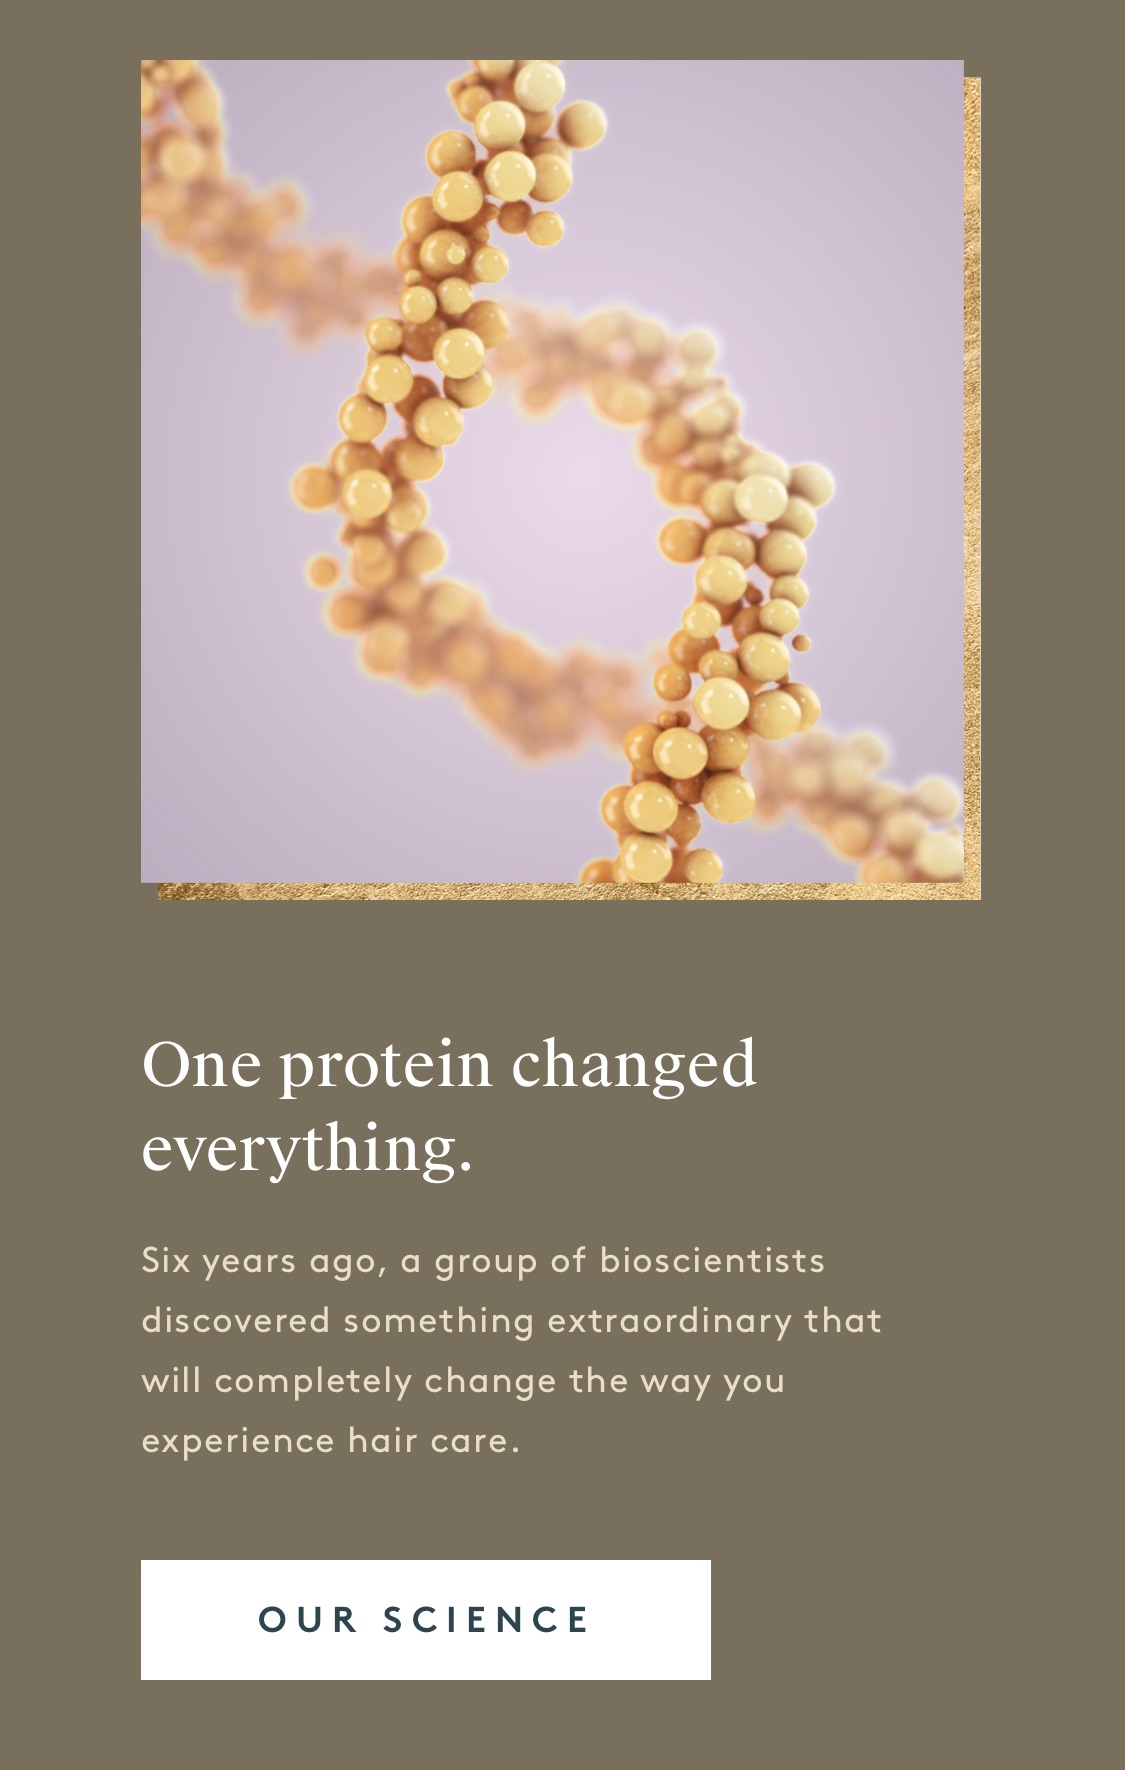 One protein changed everything.